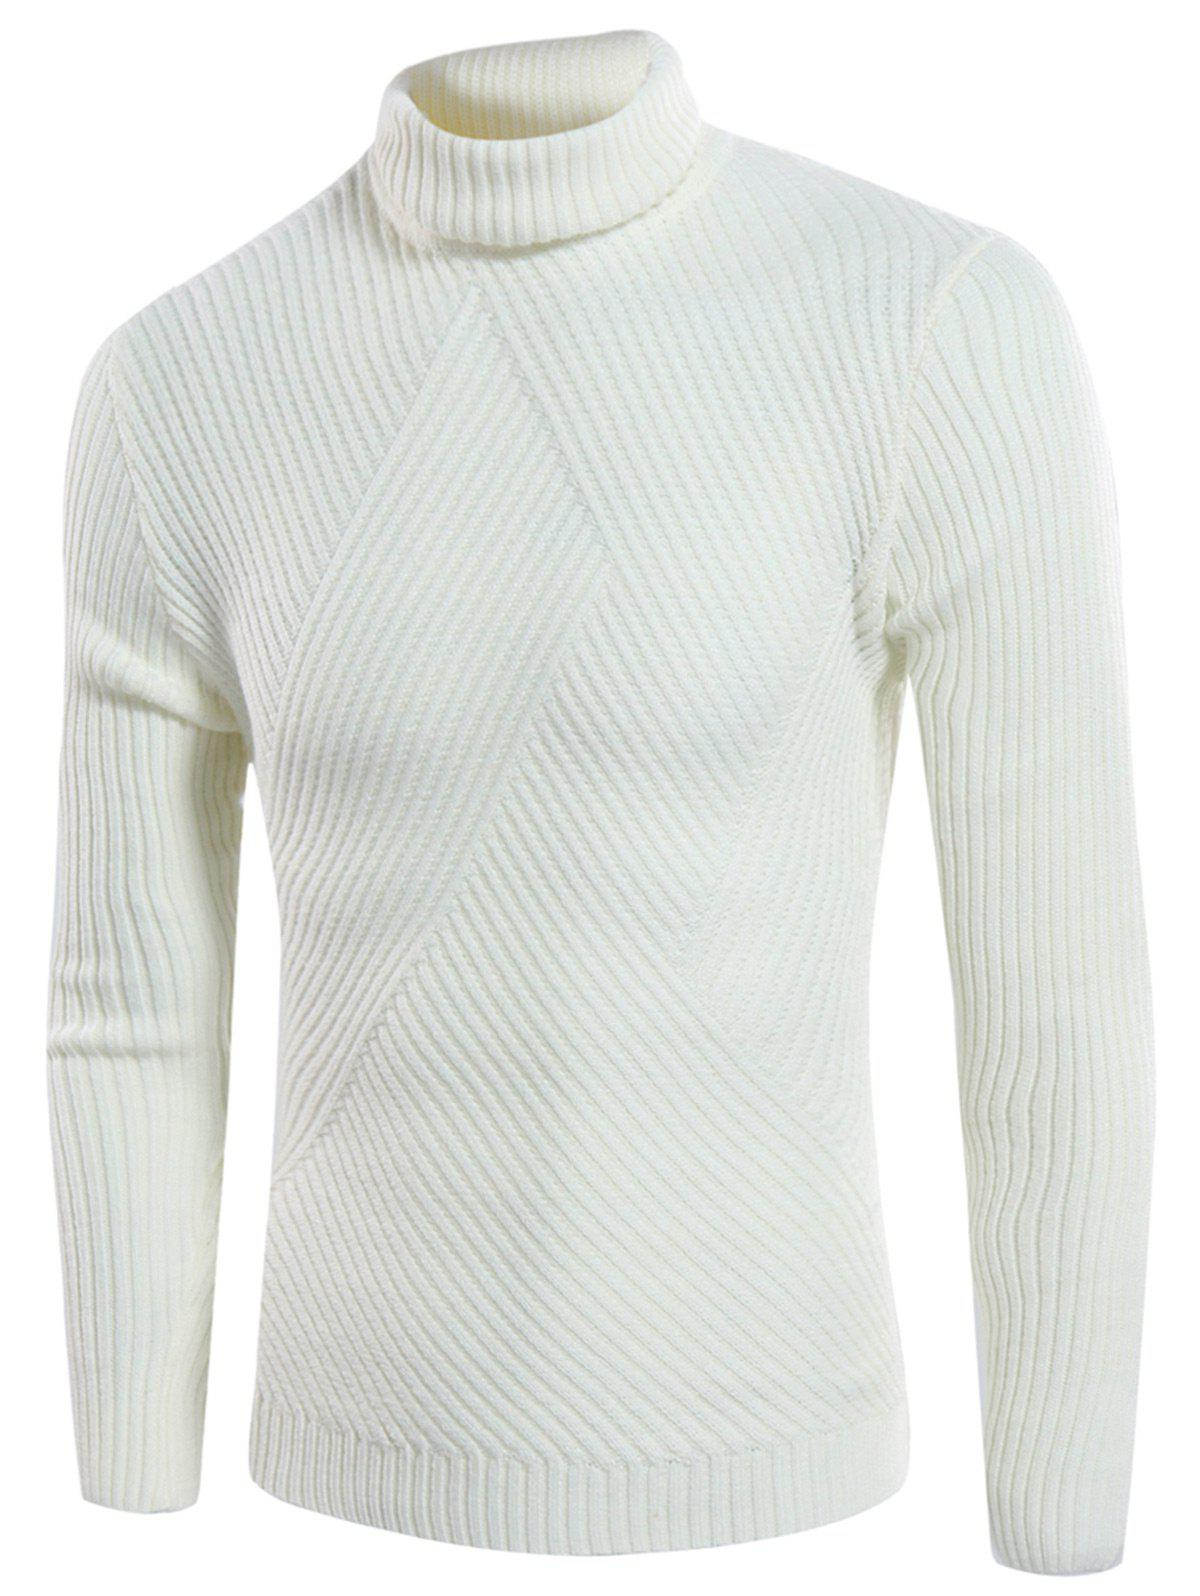 Turtle Neck Twill Knitting Ribbed Sweater 218003622